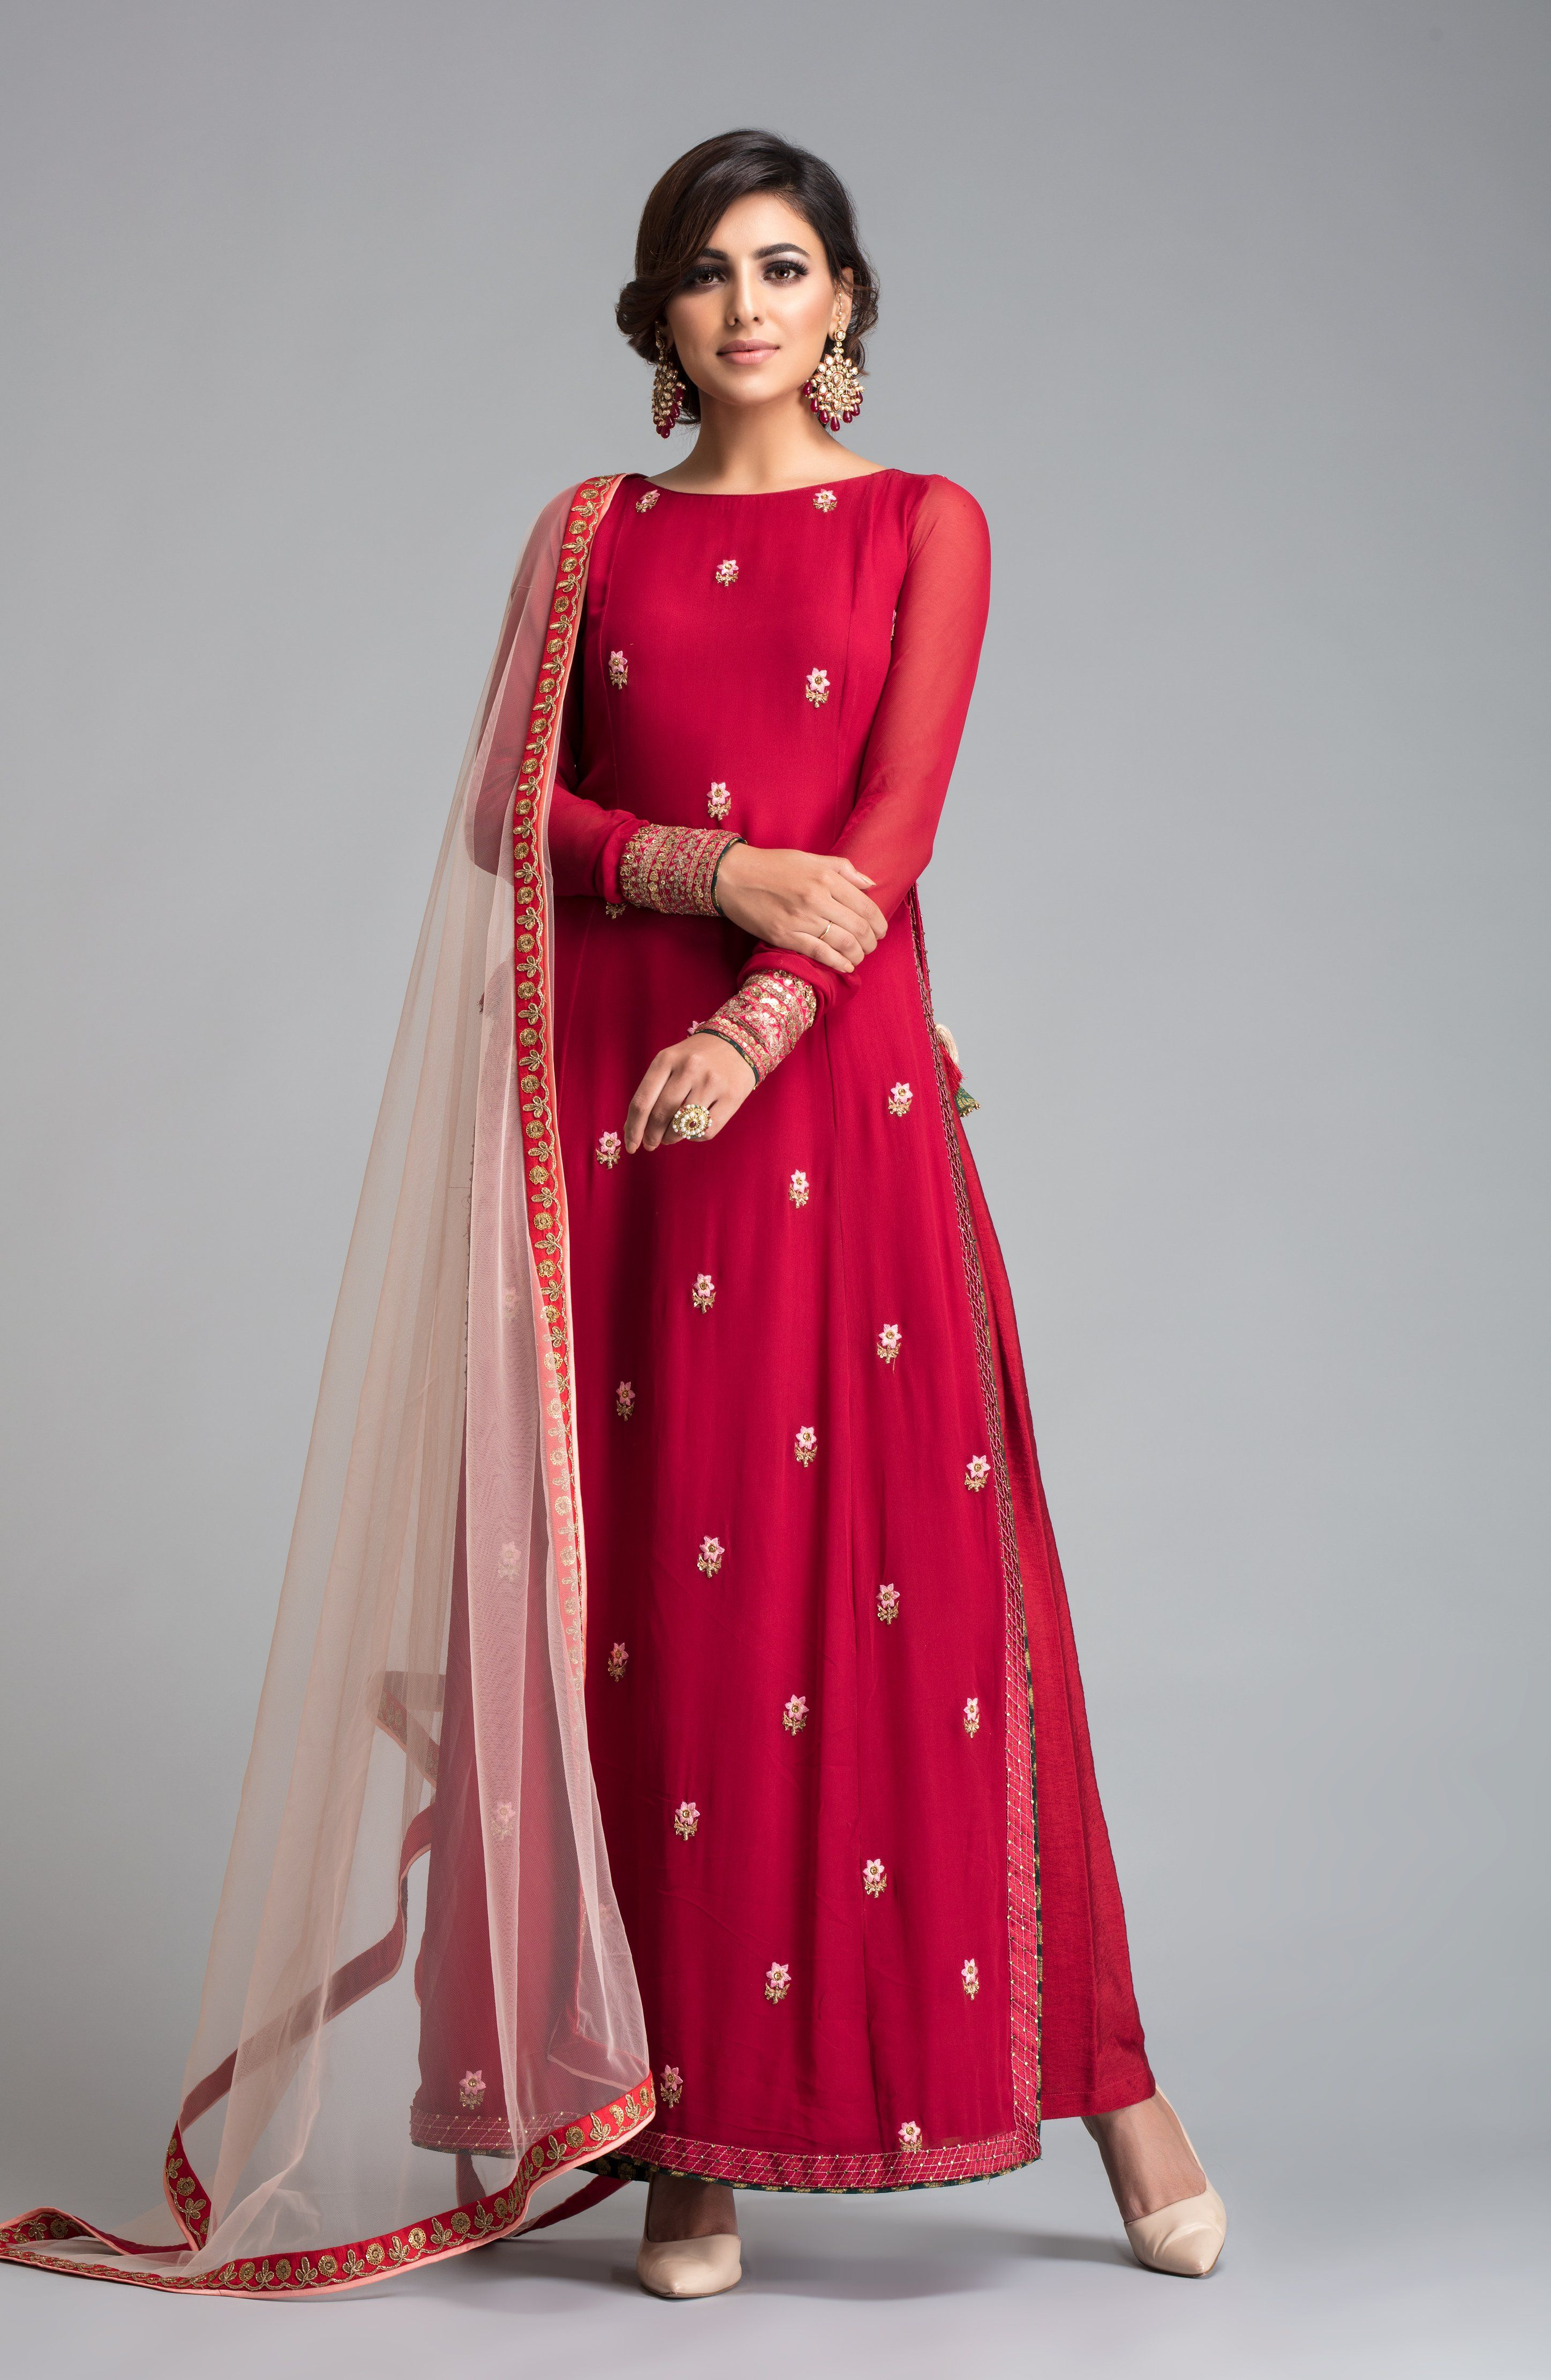 d67ae4c61d2 Burgundy High slit kurti with side pleated palazzo and contrast peach  dupatta. Fabric  Viscous